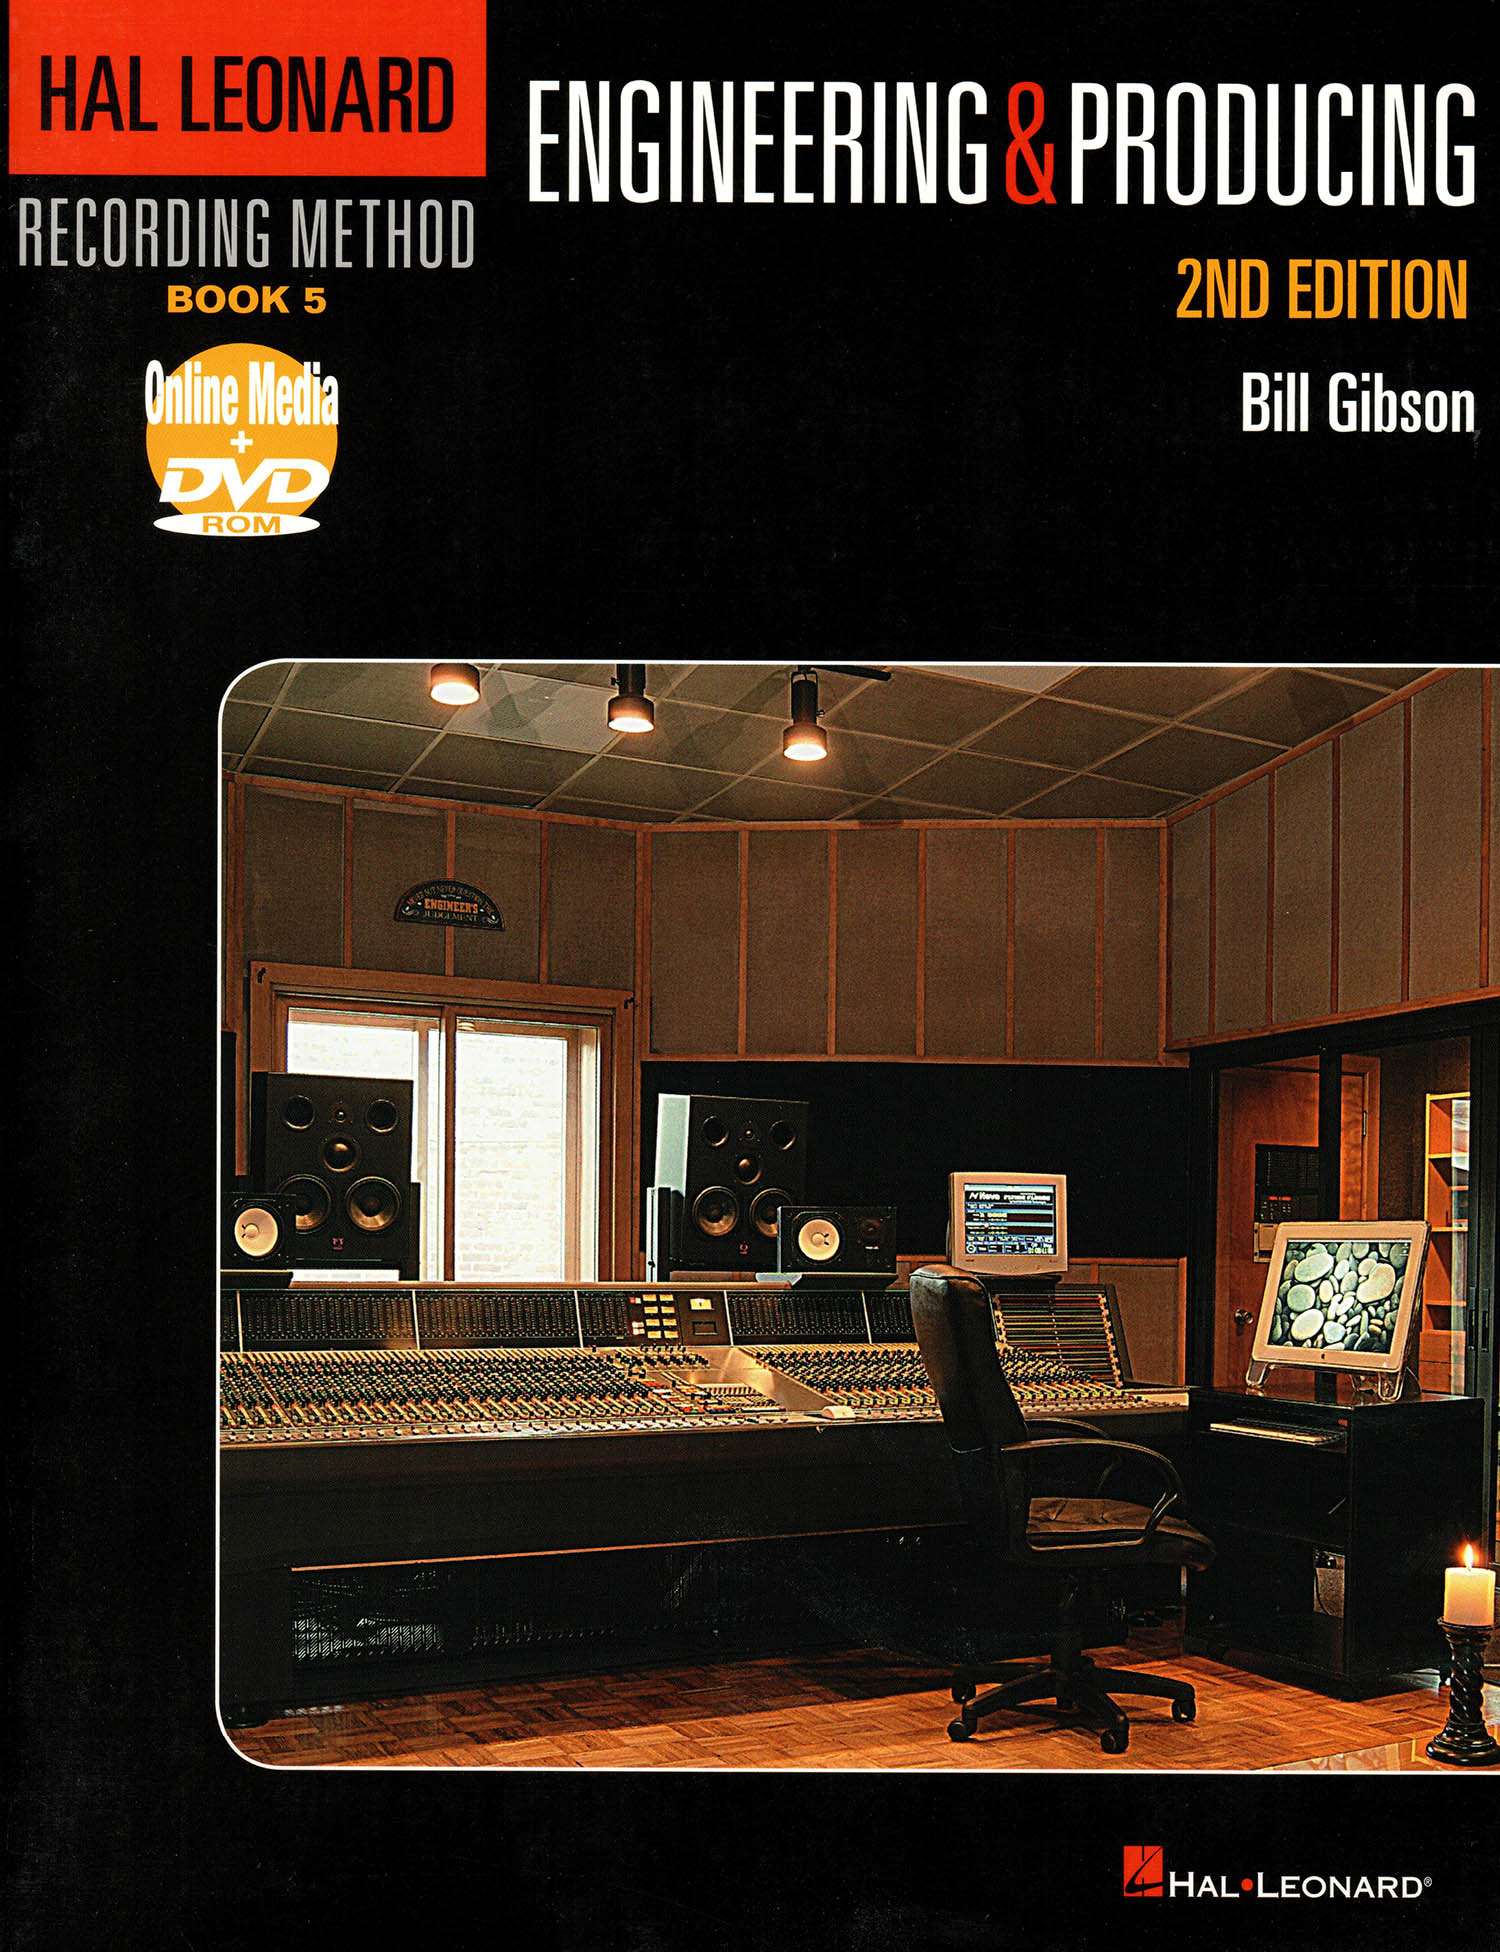 Hal Leonard Recording Method: Recording Book 5: Engineering and Producing (2nd Edition)